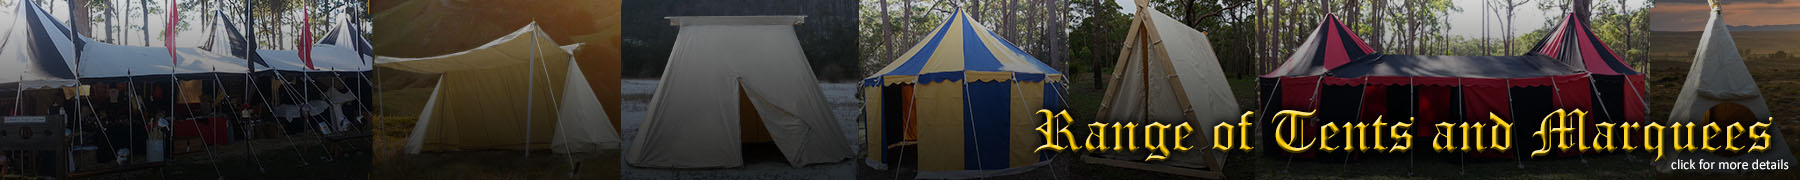 Range of tents and marquees - click for more details